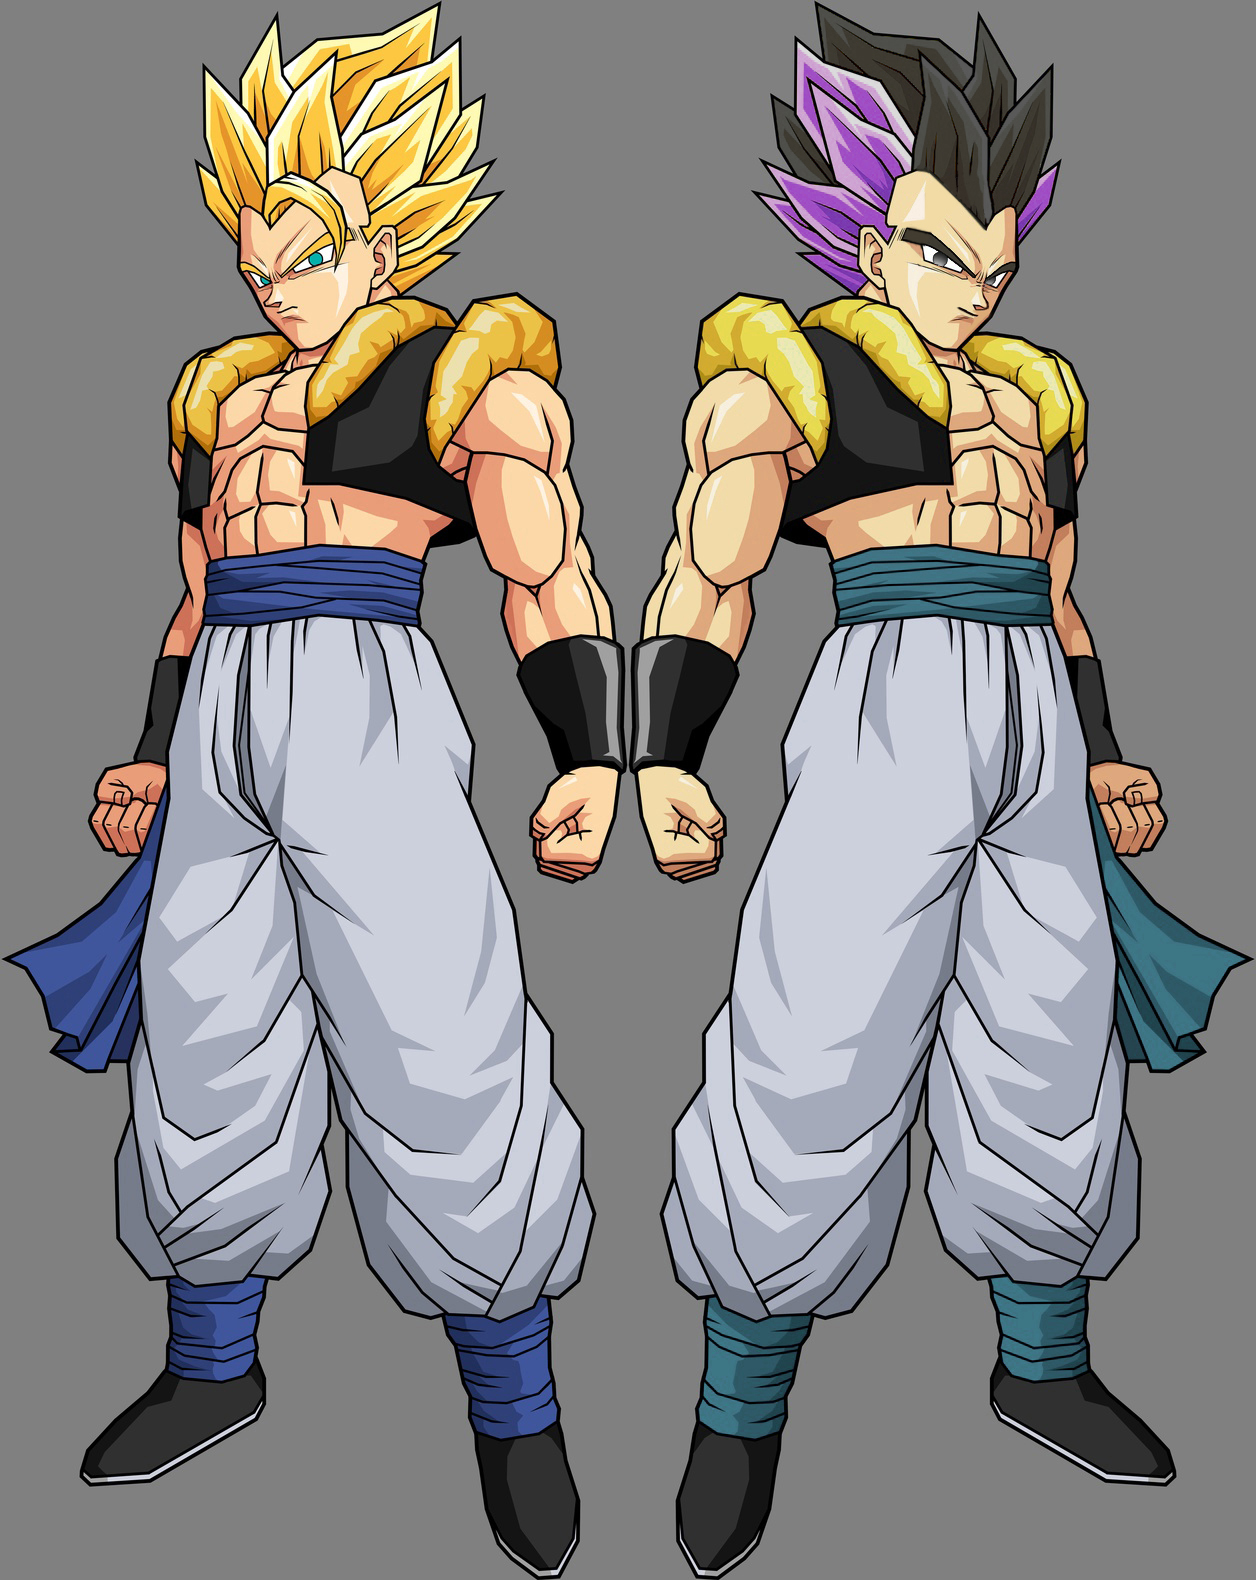 Gotenks Adult and Gogeta by alessandelpho on DeviantArt